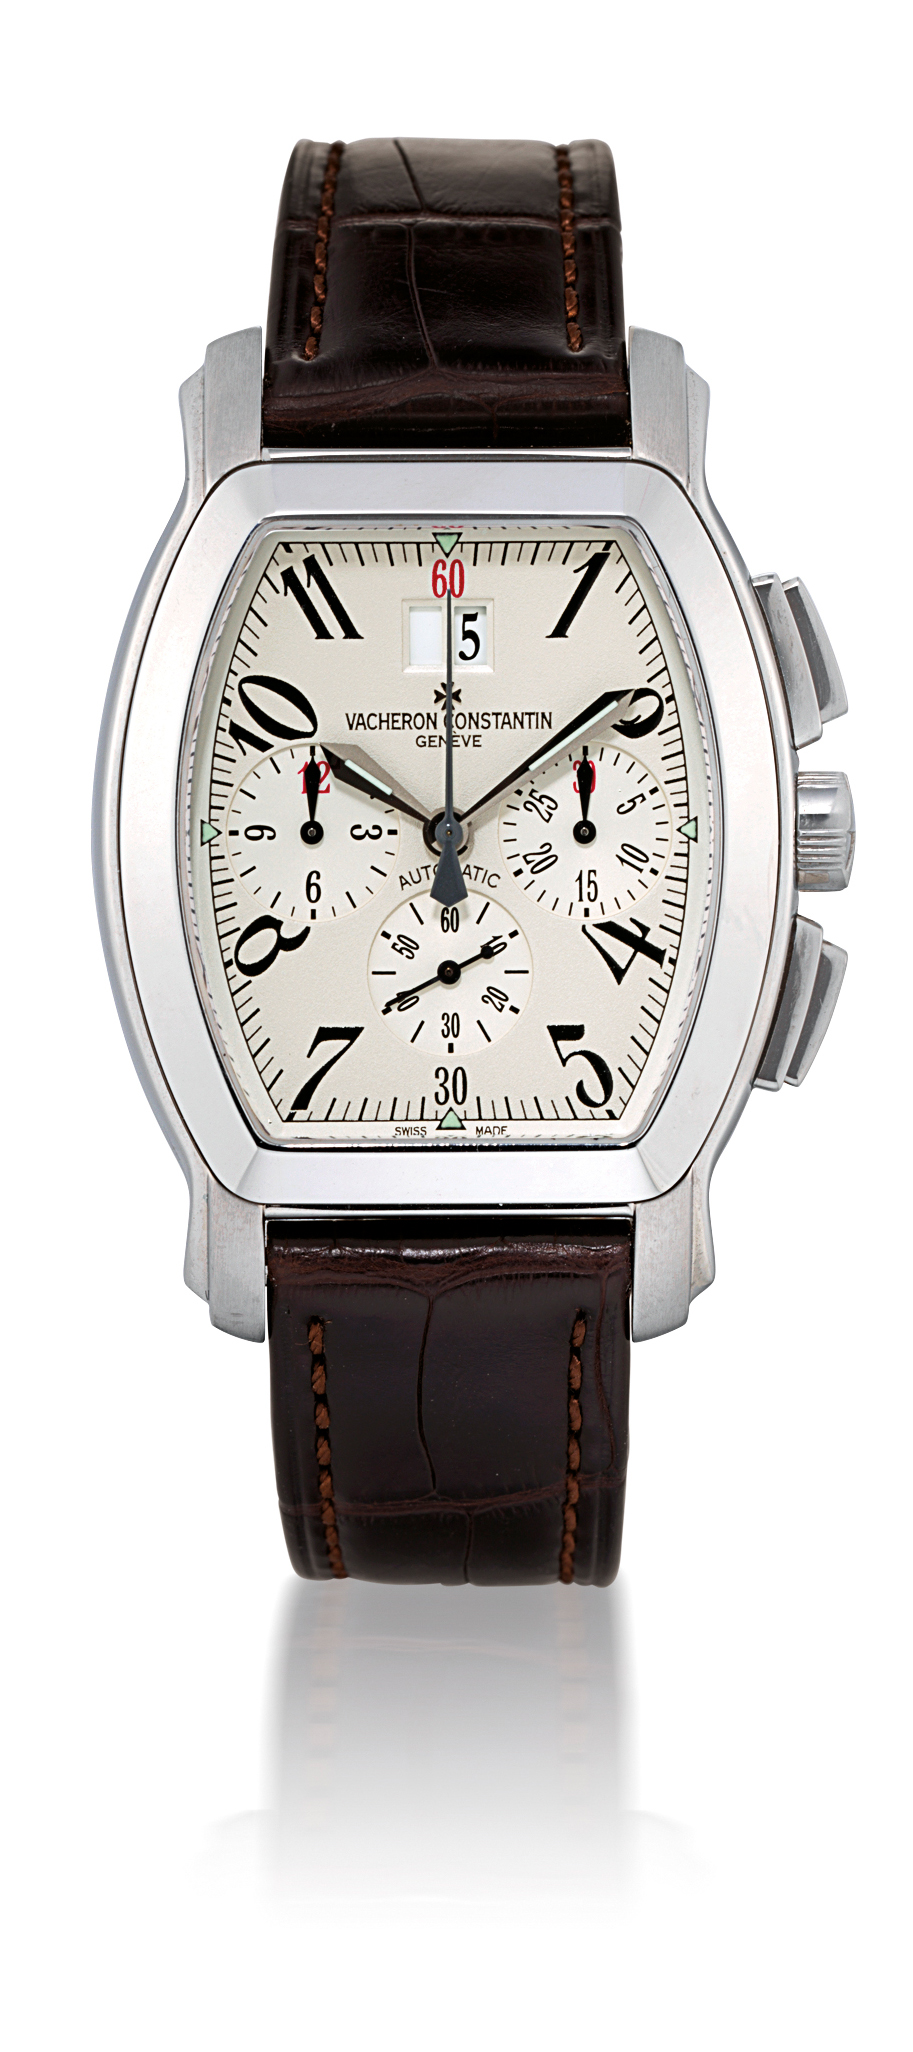 VACHERON CONSTANTIN, ROYAL EAGLE  STAINLESS STEEL AUTOMATIC CHRONOGRAPH WRISTWATCH WITH DATE DISPLAY